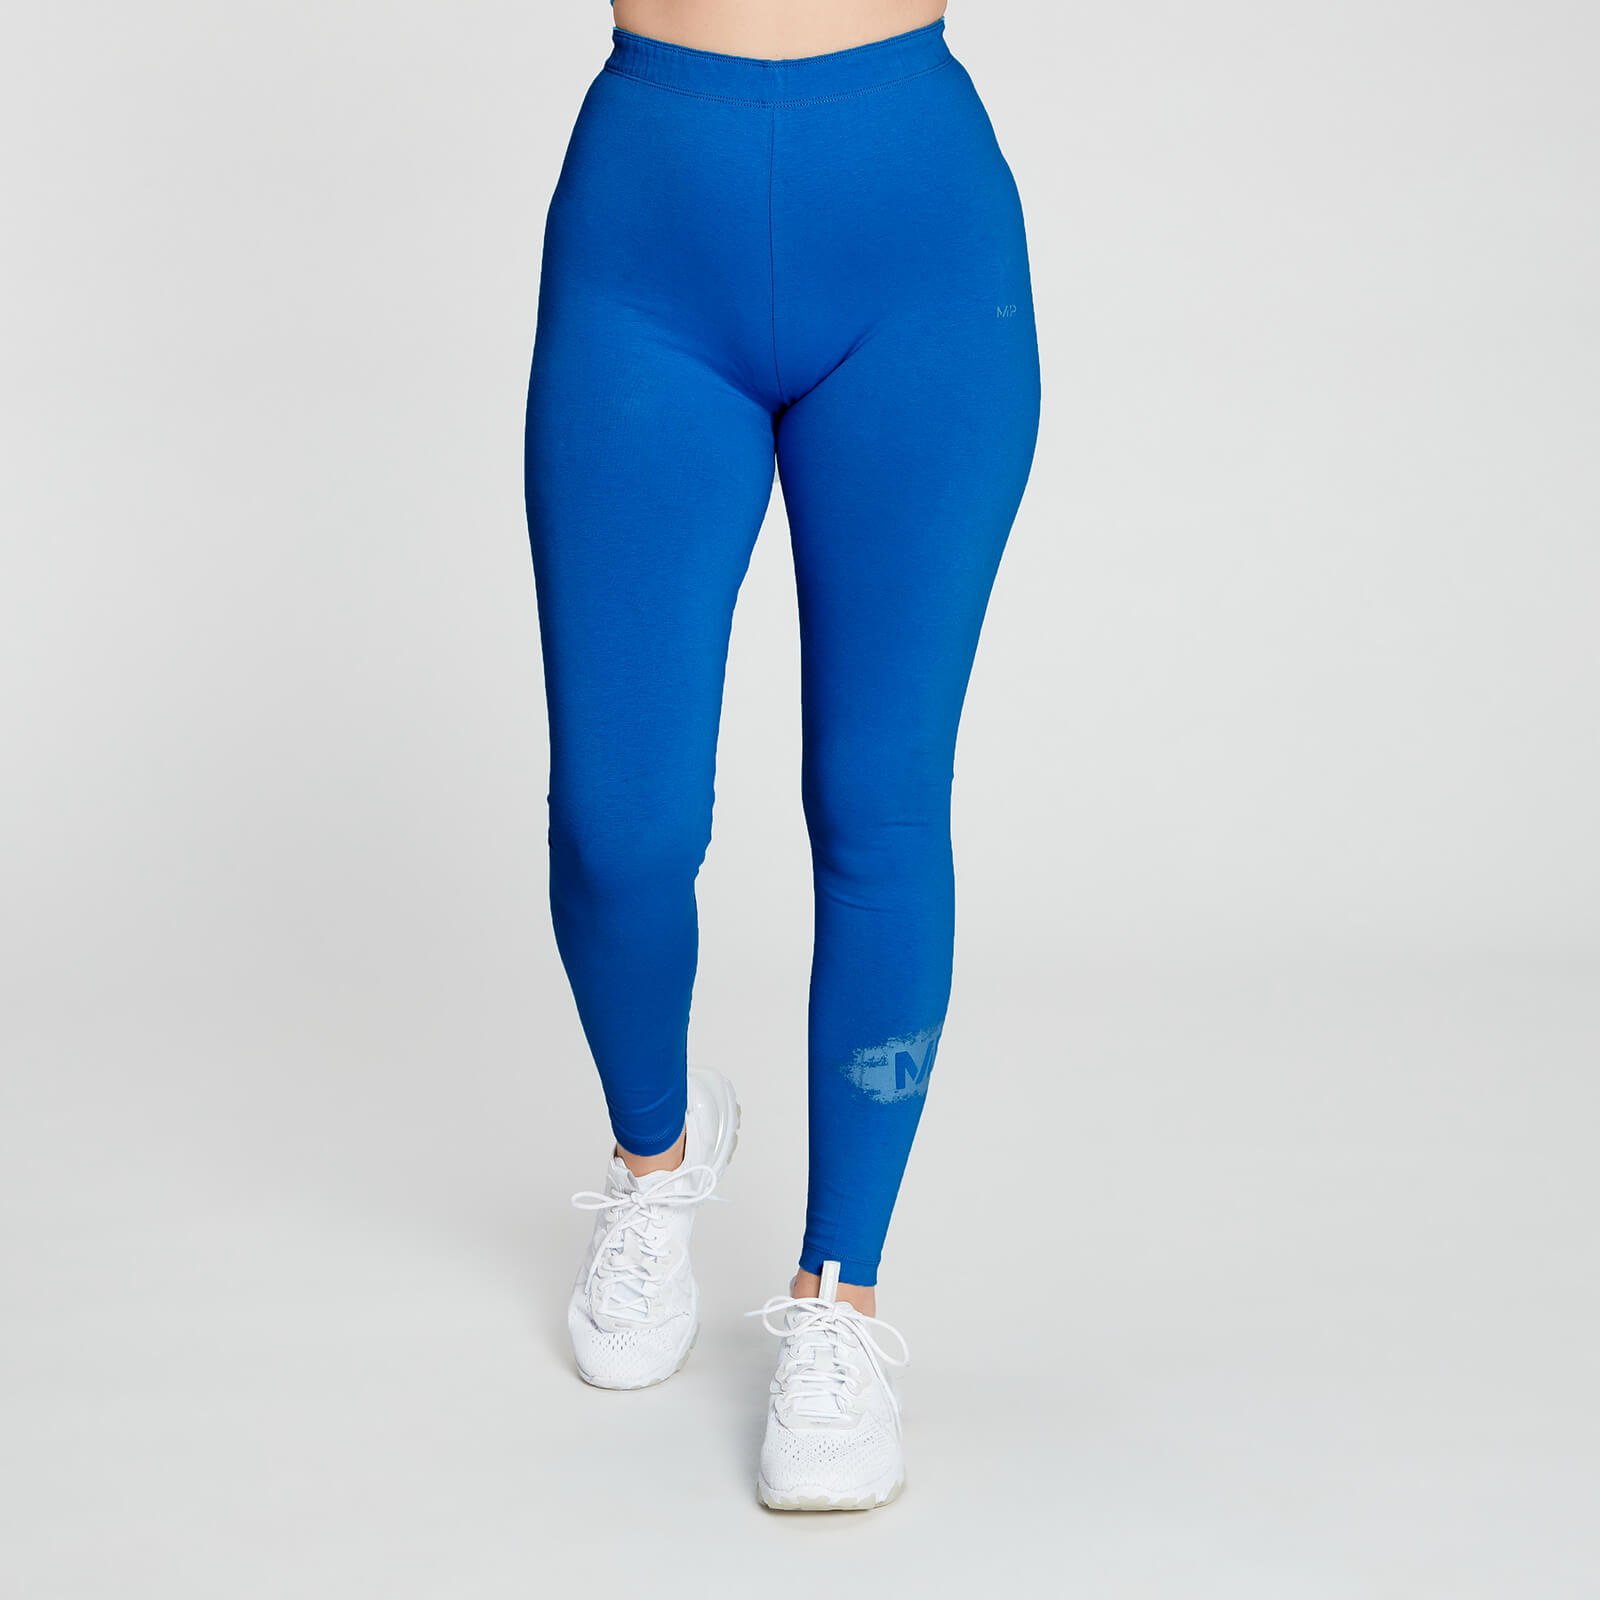 Купить MP Women's Chalk Graphic Leggings - Aqua - XS, Myprotein International